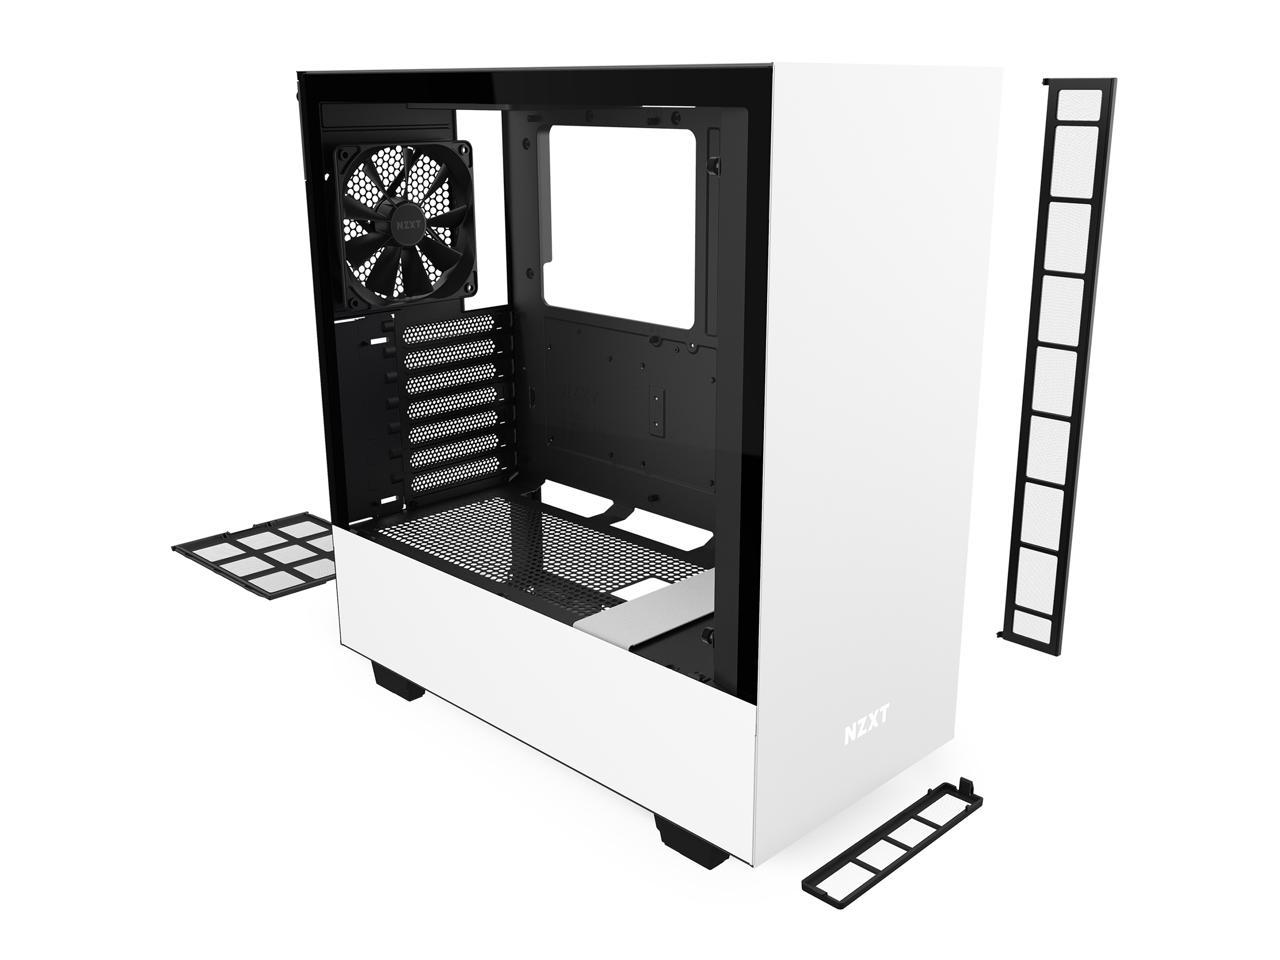 Nzxt H510 Compact Atx Mid Tower Pc Gaming Case Front I O Usb Type C Port Tempered Glass Side Panel Cable Management System Water Cooling Ready Steel Construction White Black